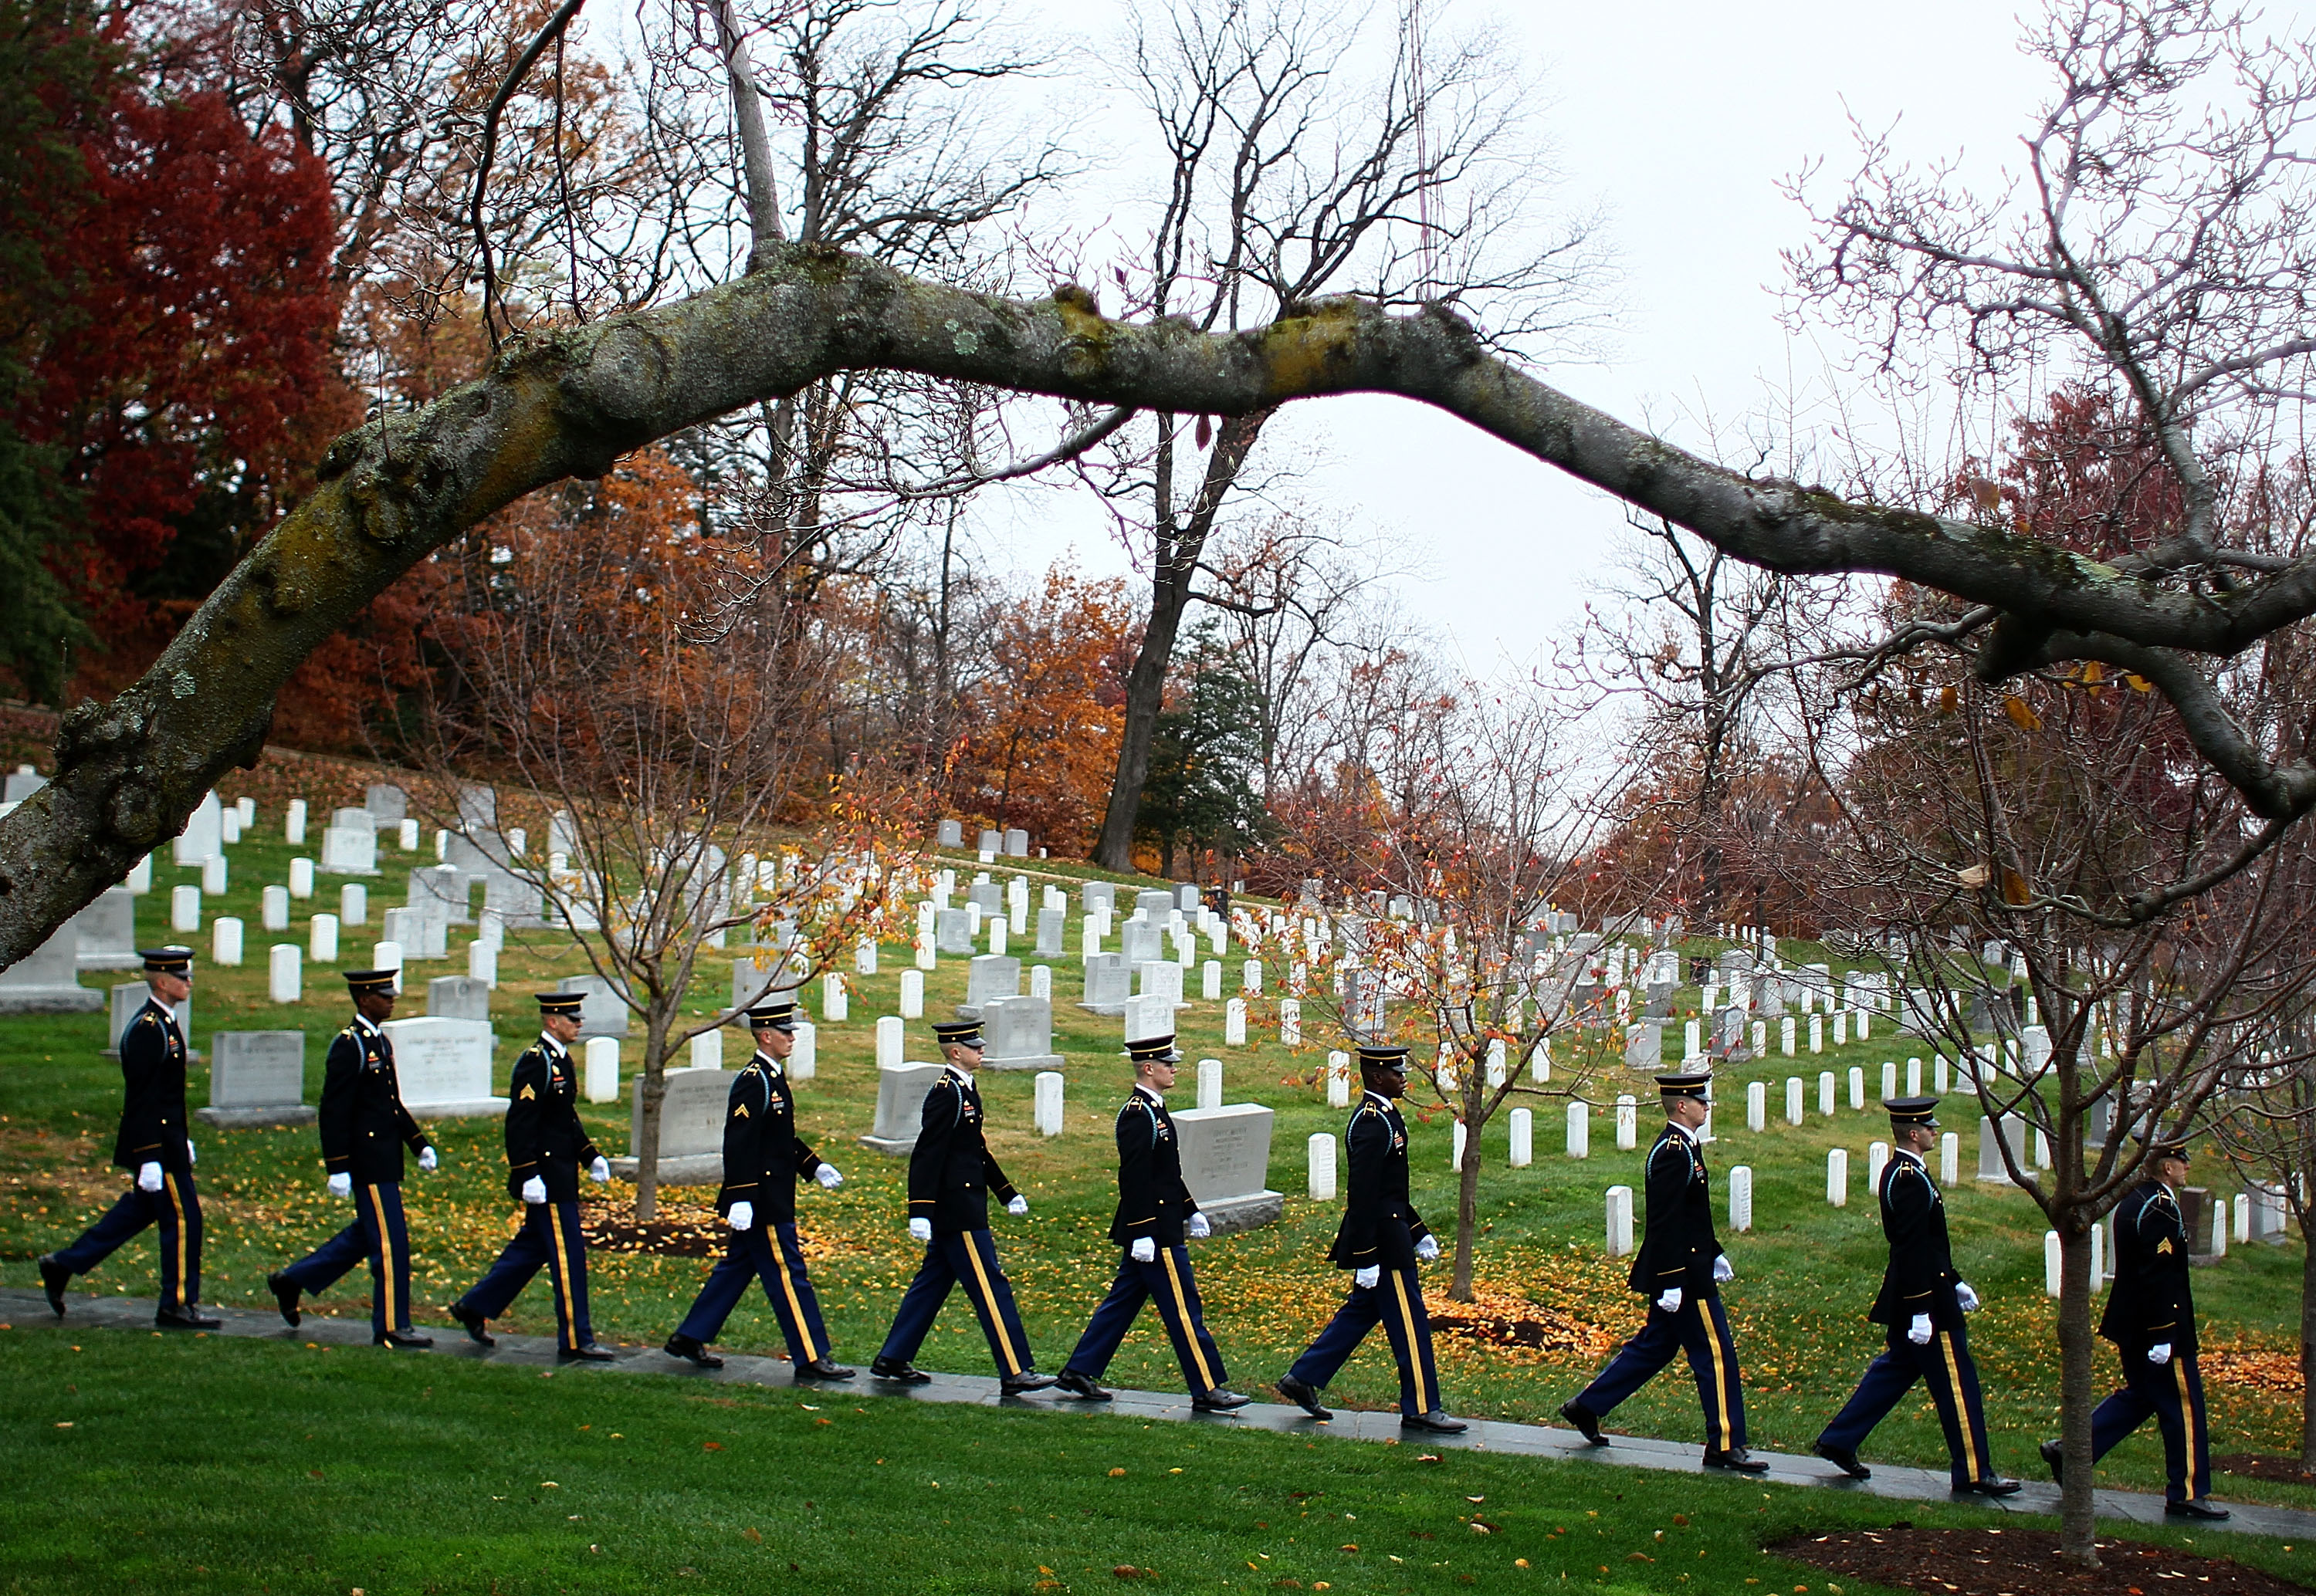 Members of the U.S. Army Old Guard walk away after a wreath-laying ceremony at President John F. Kennedy's gravesite at Arlington Cemetery in Va. on Nov. 17, 2011.